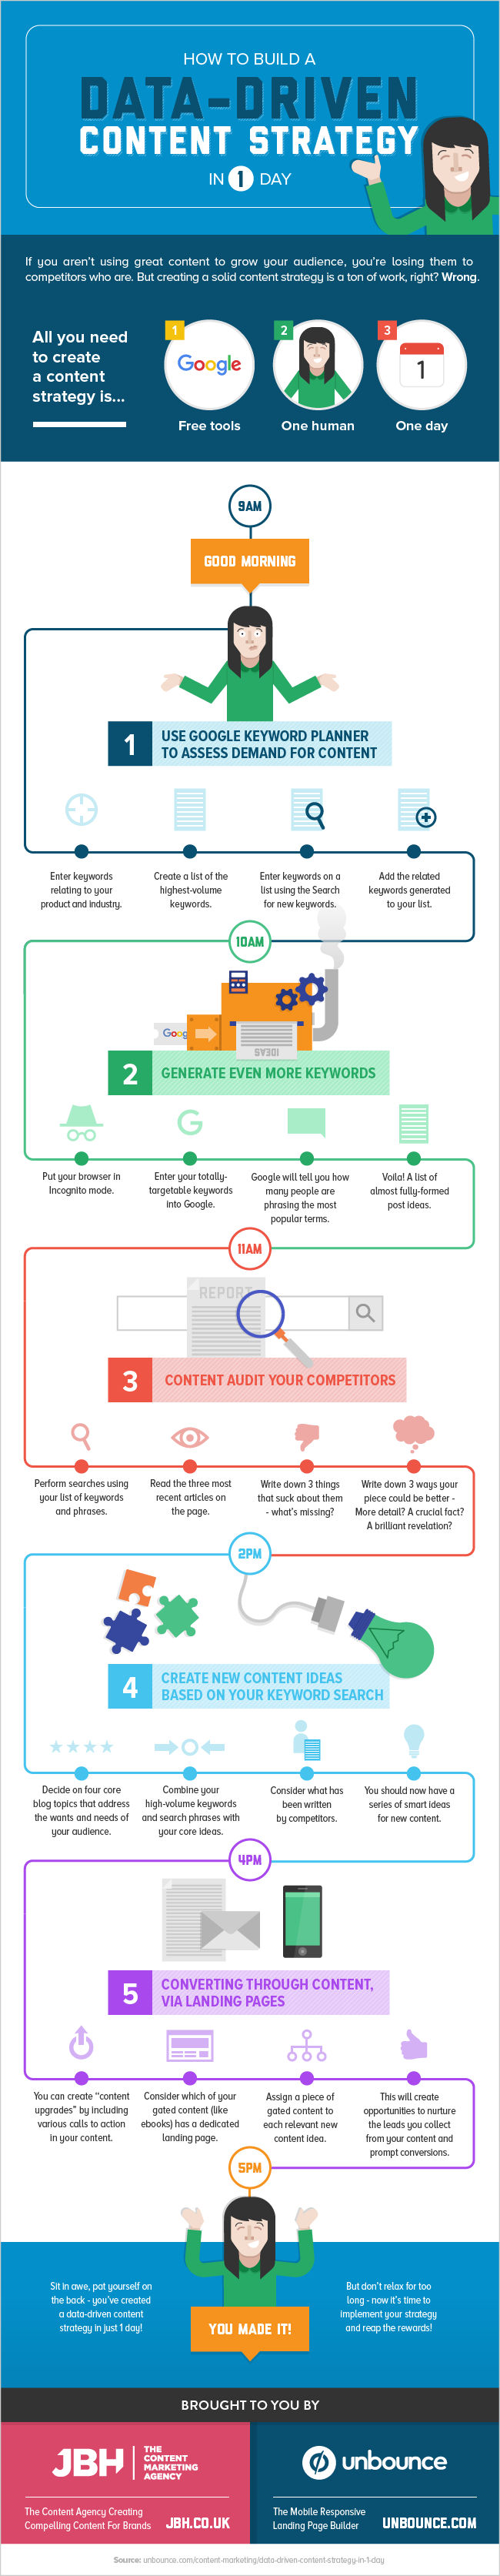 Create a Data-Driven Content Strategy in 1 Day #infographic